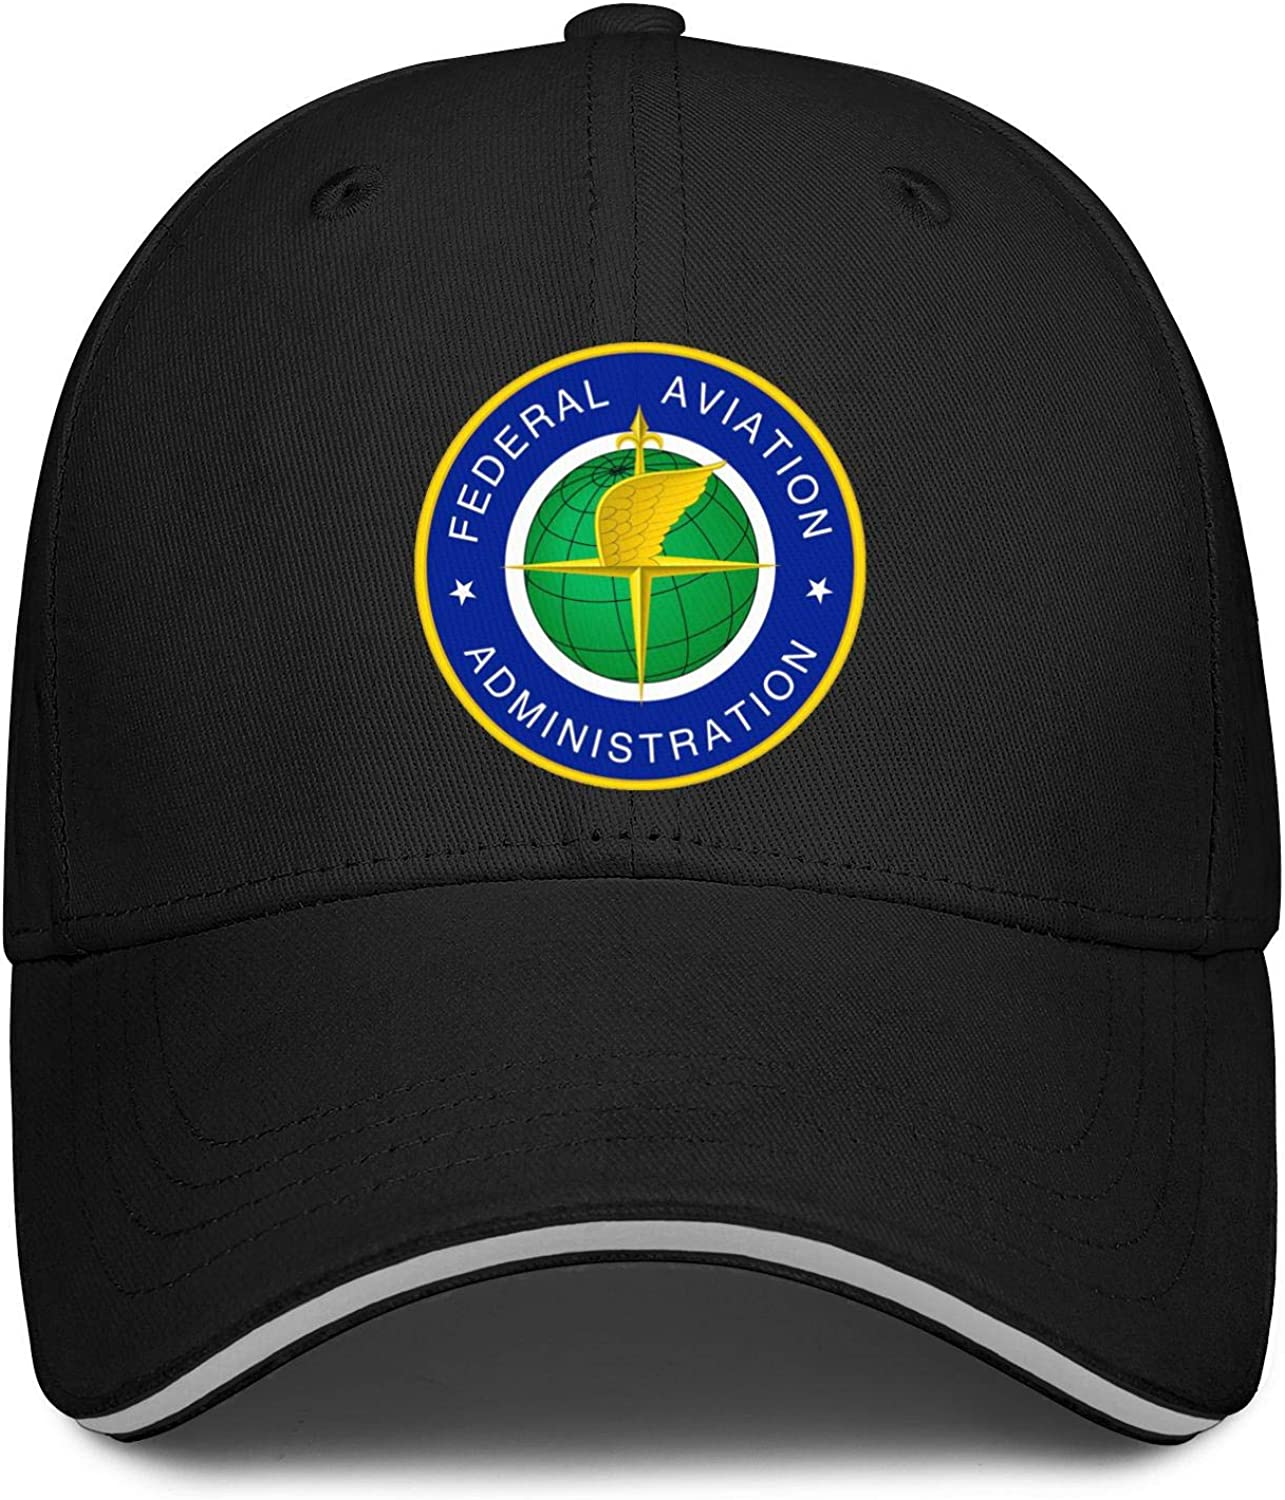 Federal Aviation Administration Logo Baseball Cap Custom Dad Hats Mens Adjustable Snapback Ball Caps for Women